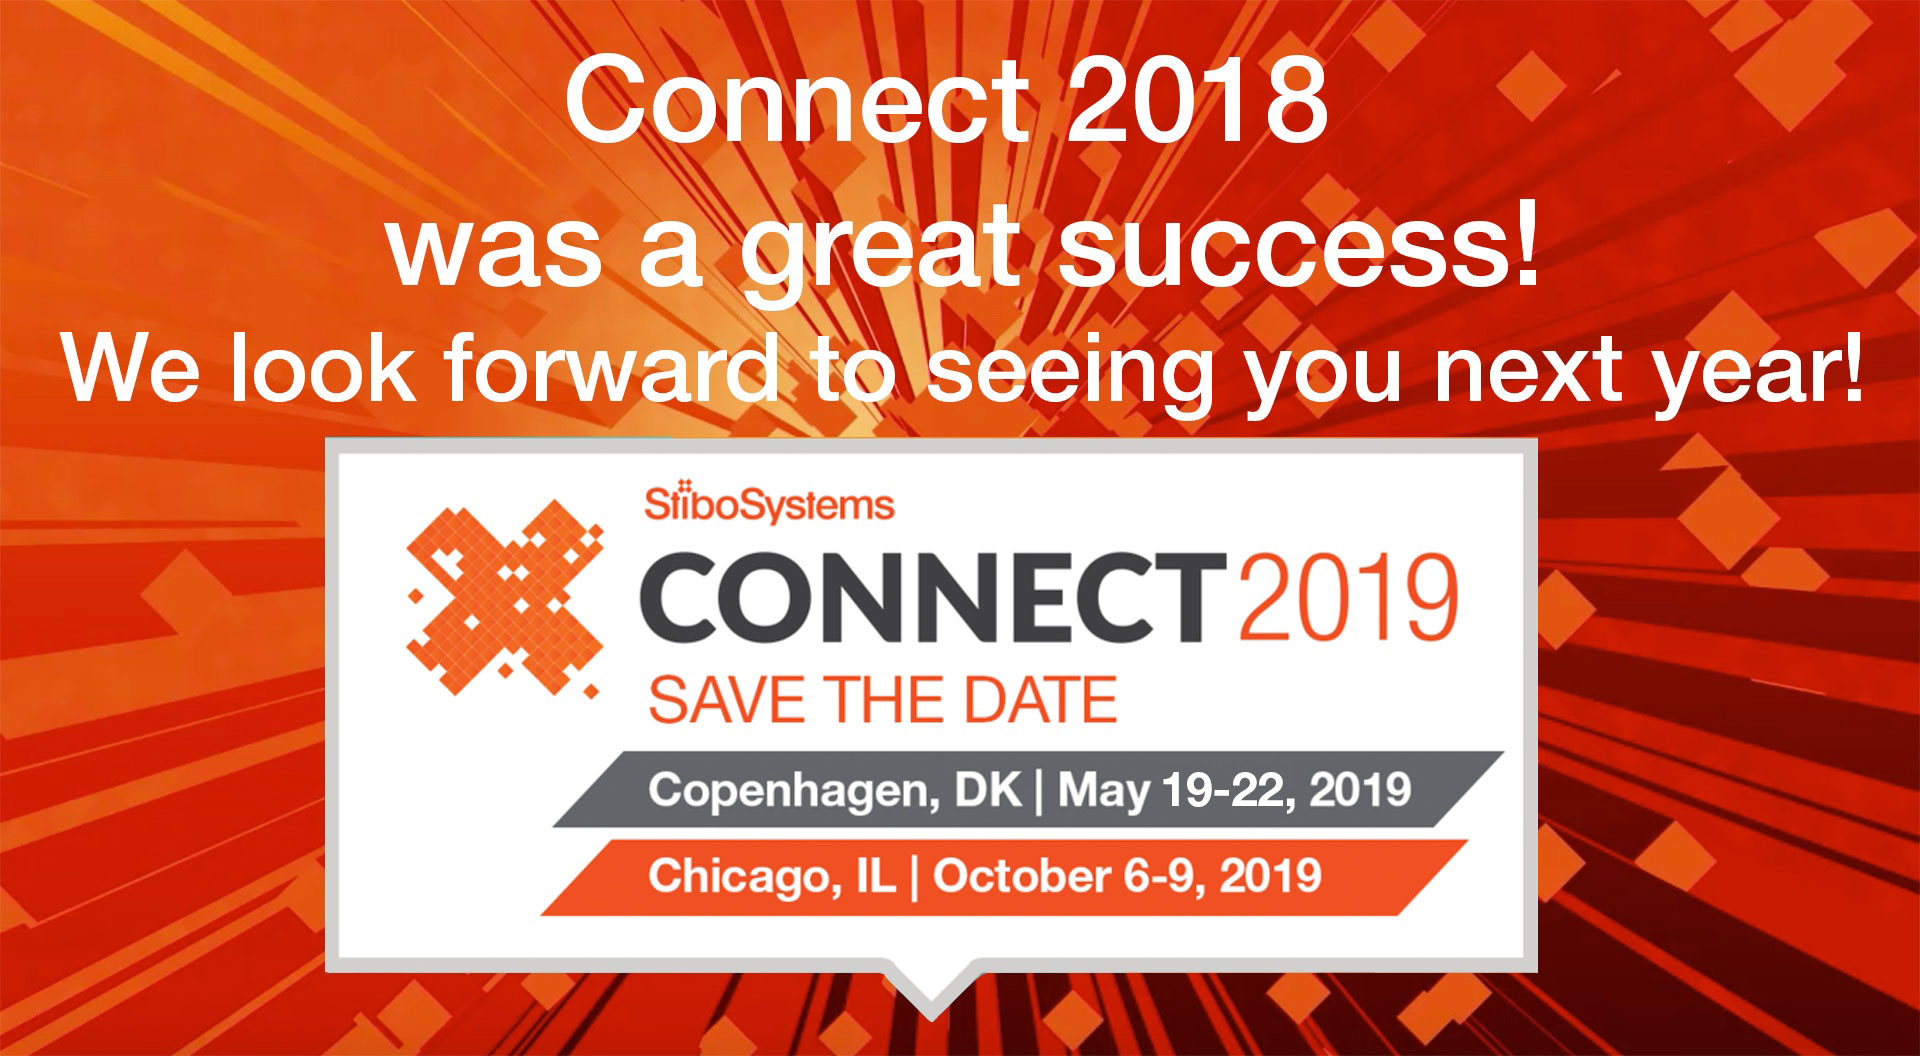 Connect 2018 | Stibo Systems' Master Data Management Conference